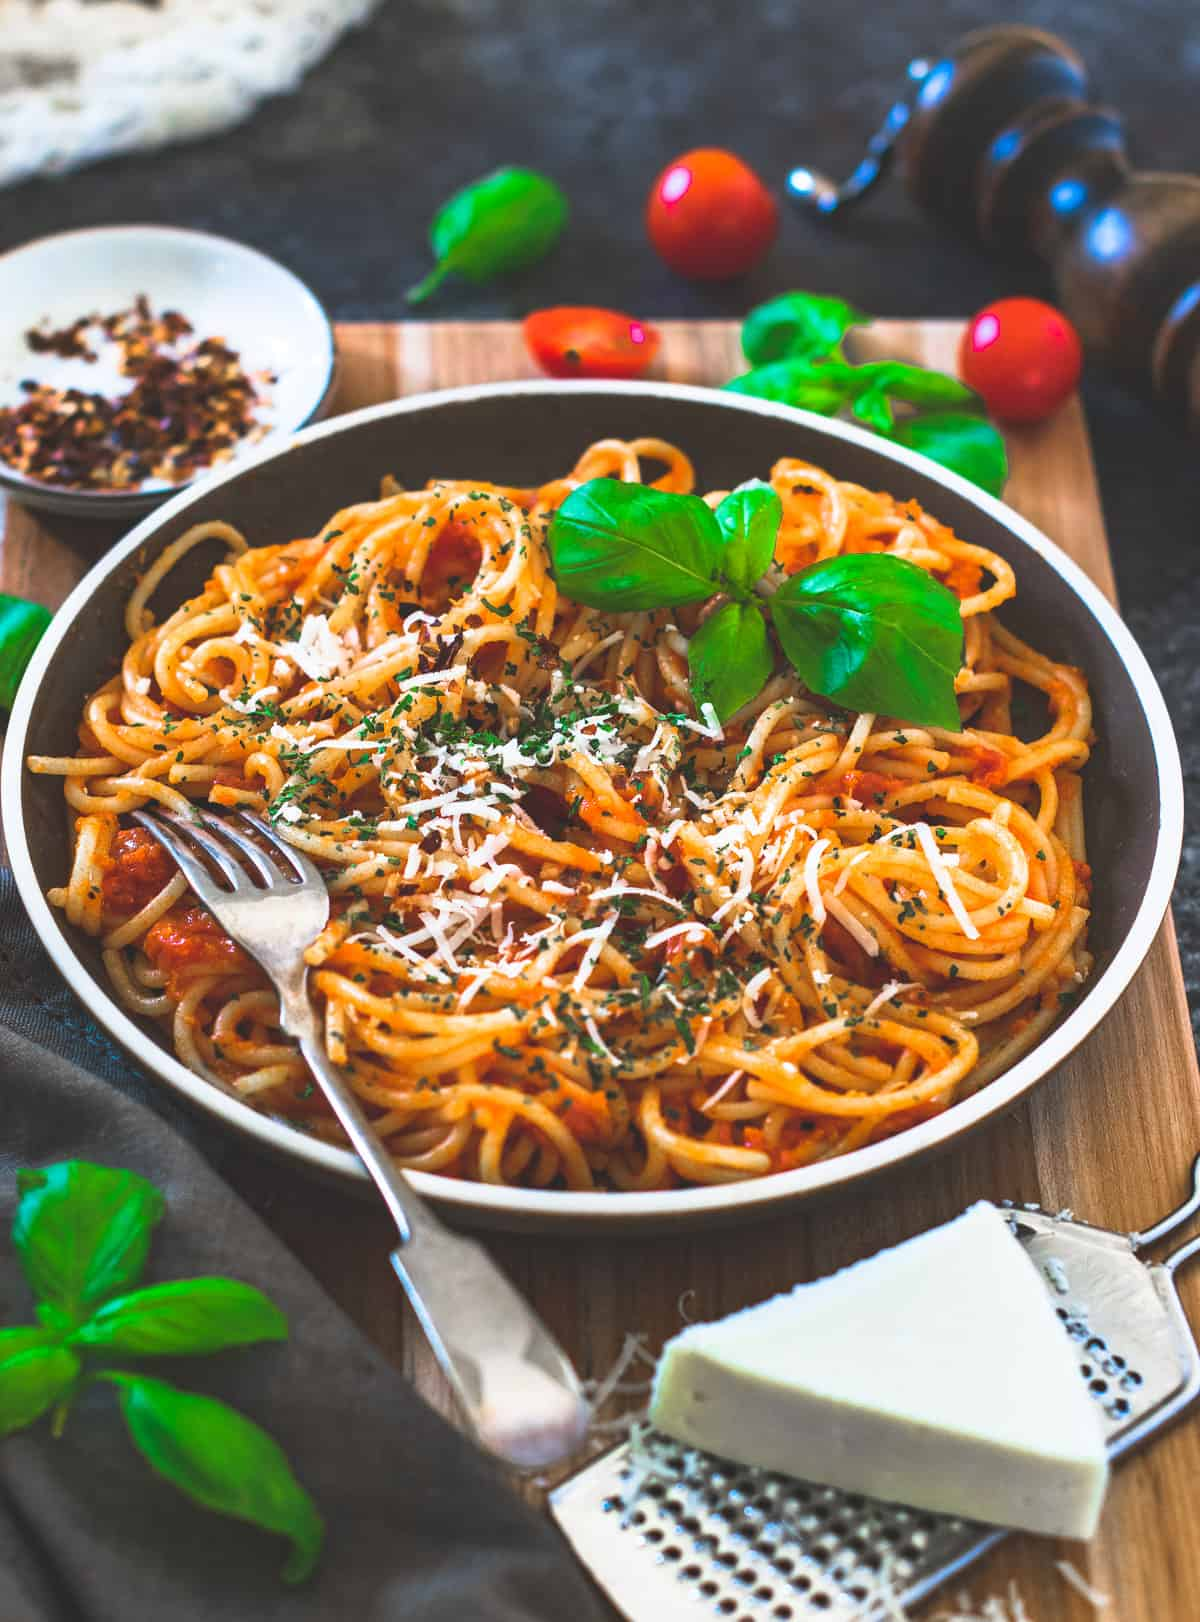 Spaghetti on a brown plate with cheese